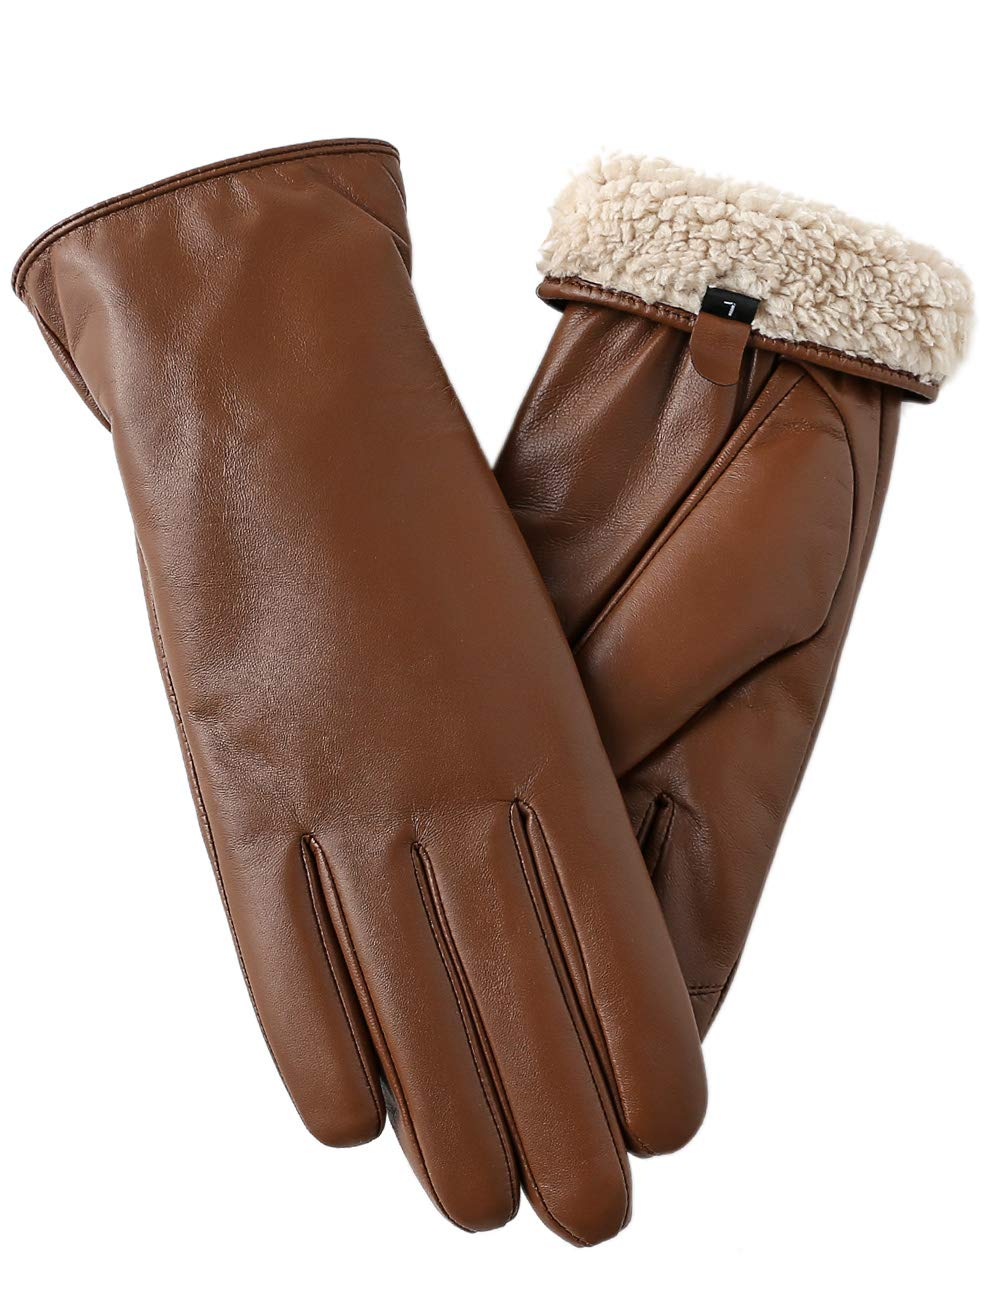 Best Rated in Women's Cold Weather Gloves & Helpful